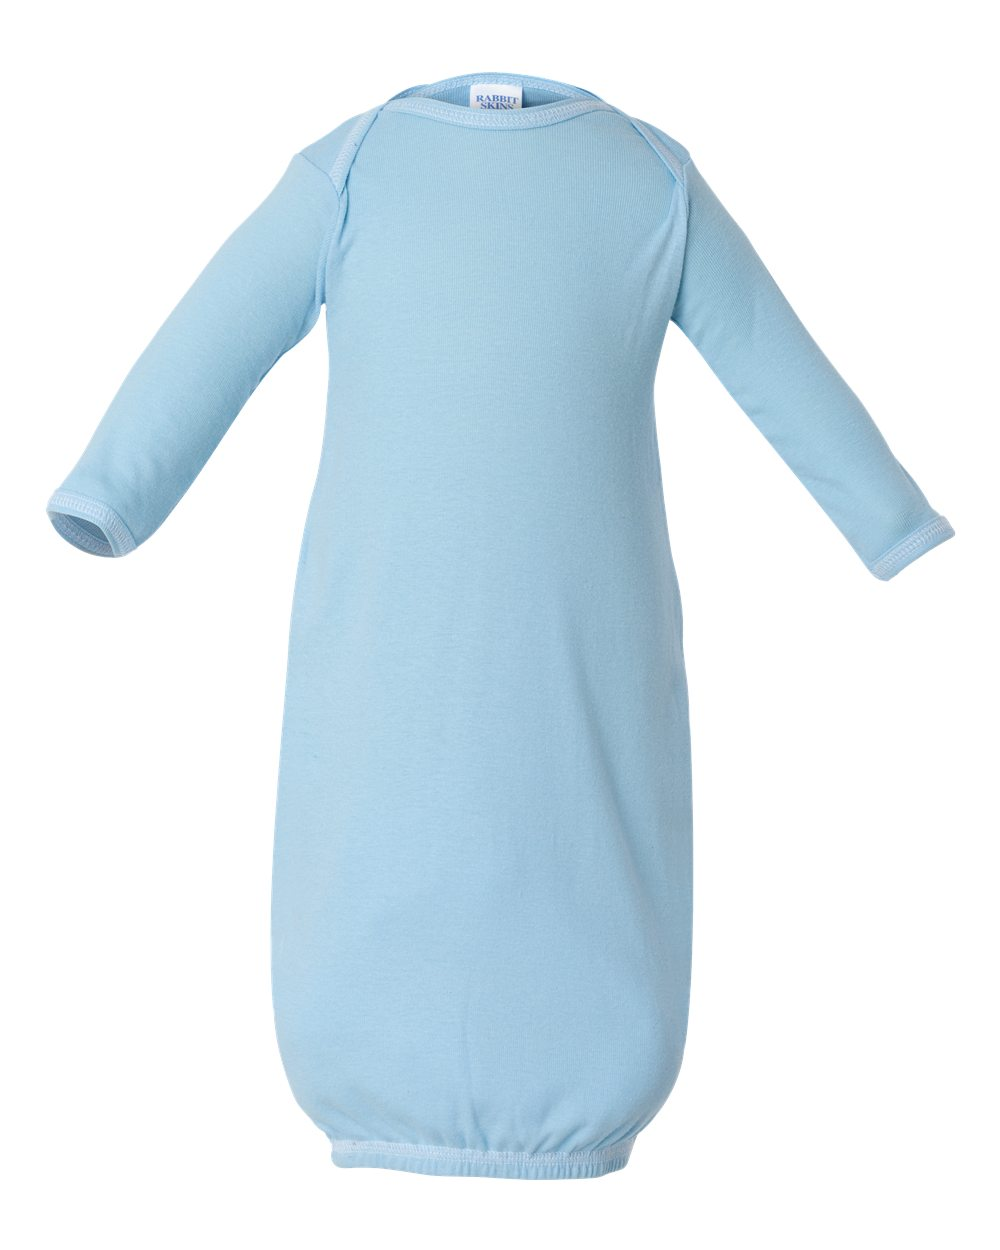 Rabbit Skins Baby Boy's Infant Baby Rib Layette Body Suit, Style 4406